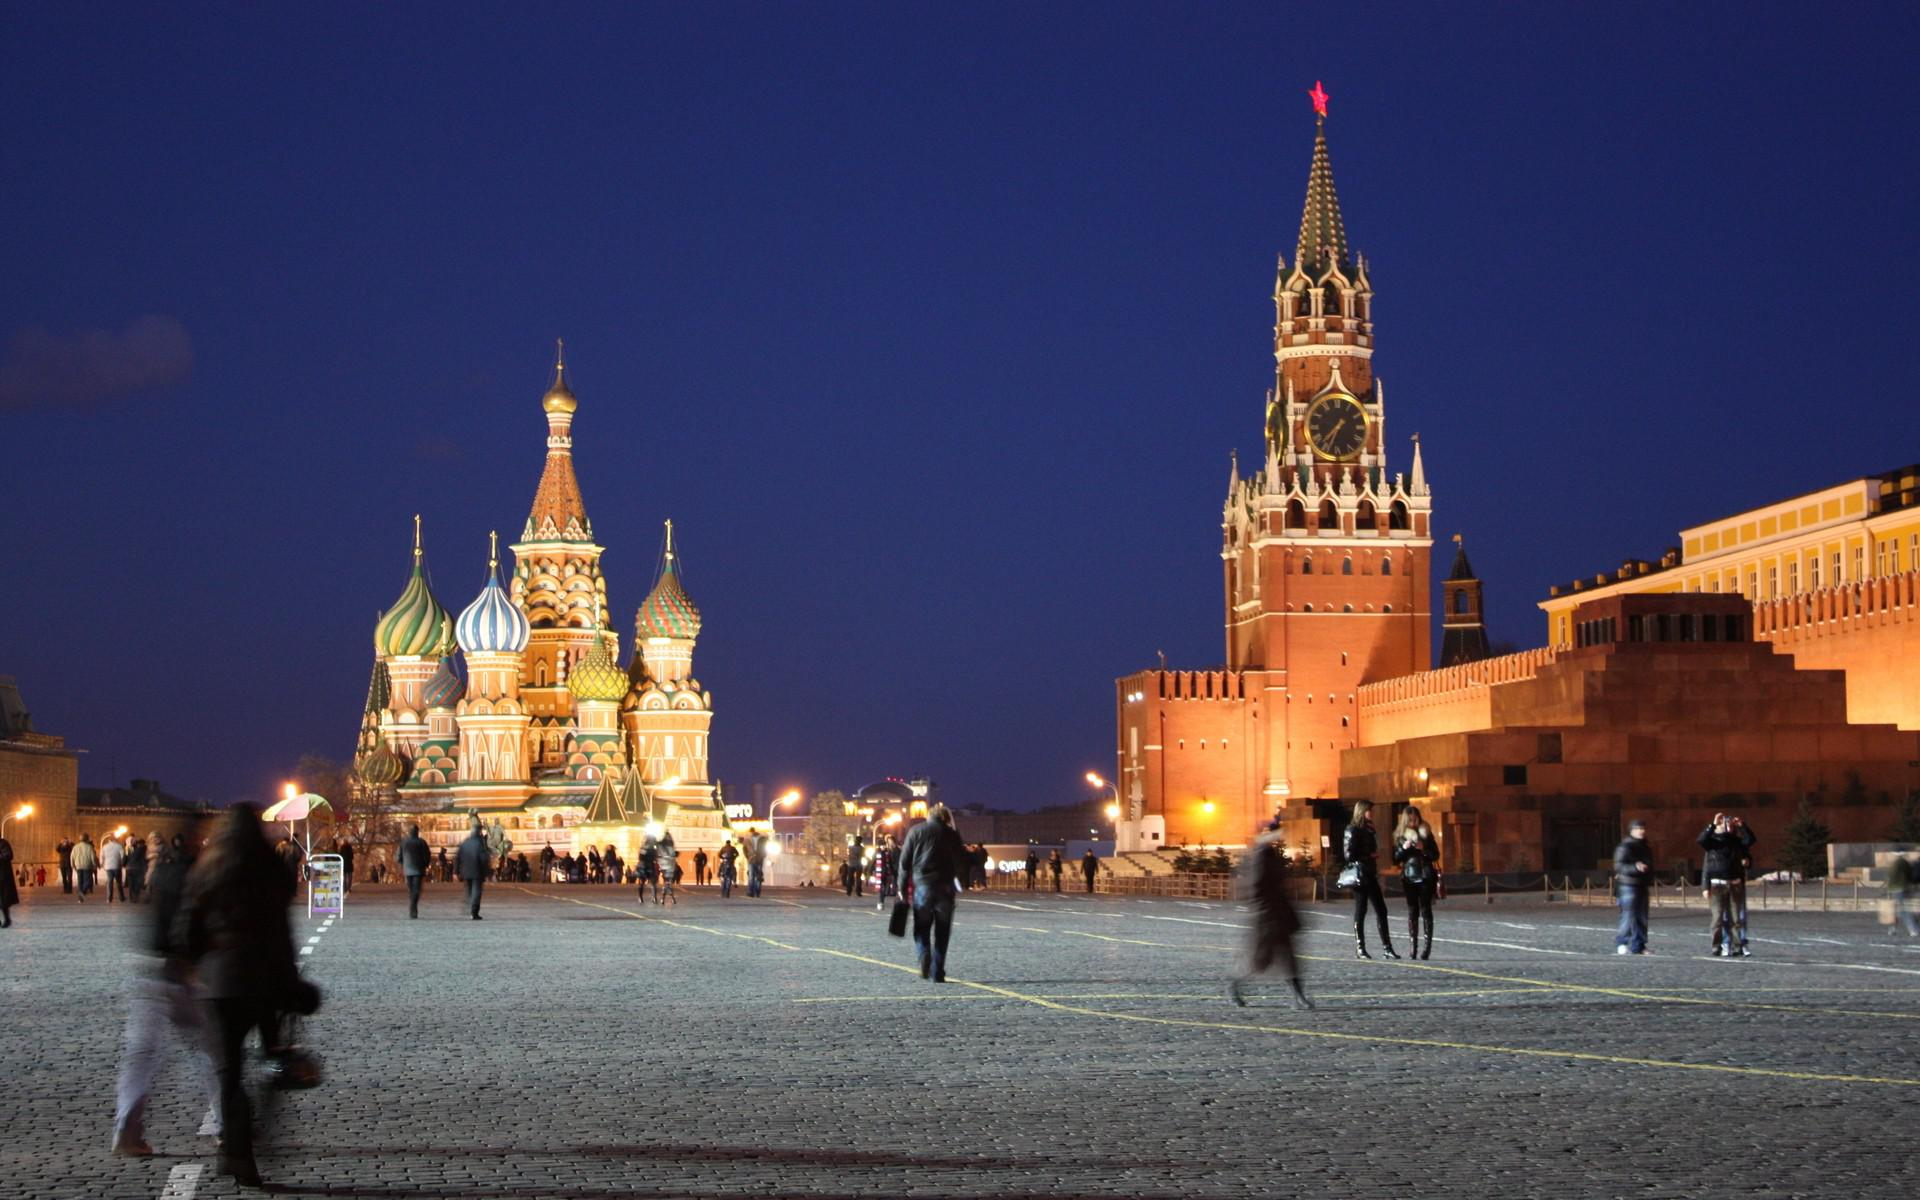 Cute Small Animals Wallpapers Hd Cityscapes Russia Moscow Kremlin Red Square Saint Basil